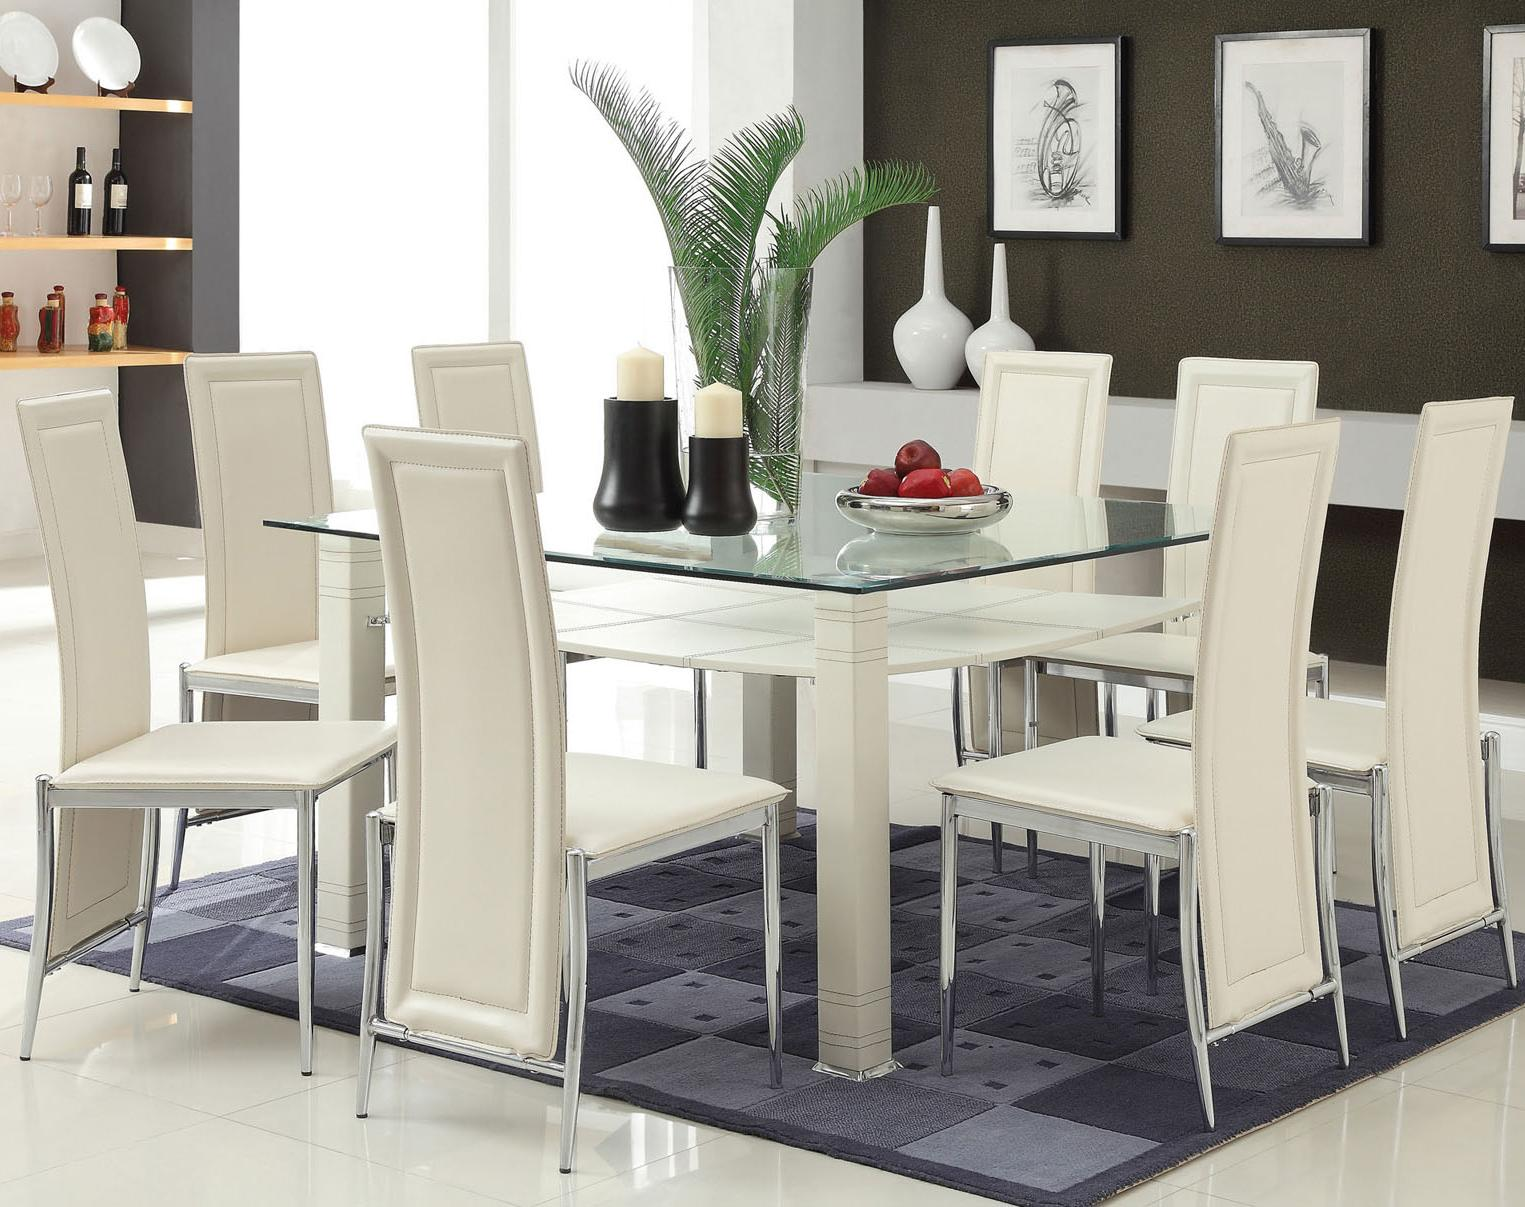 Acme Furniture Riggan White Leg Table with White Vinyl Chairs Set - Item Number: 70610+6X70612